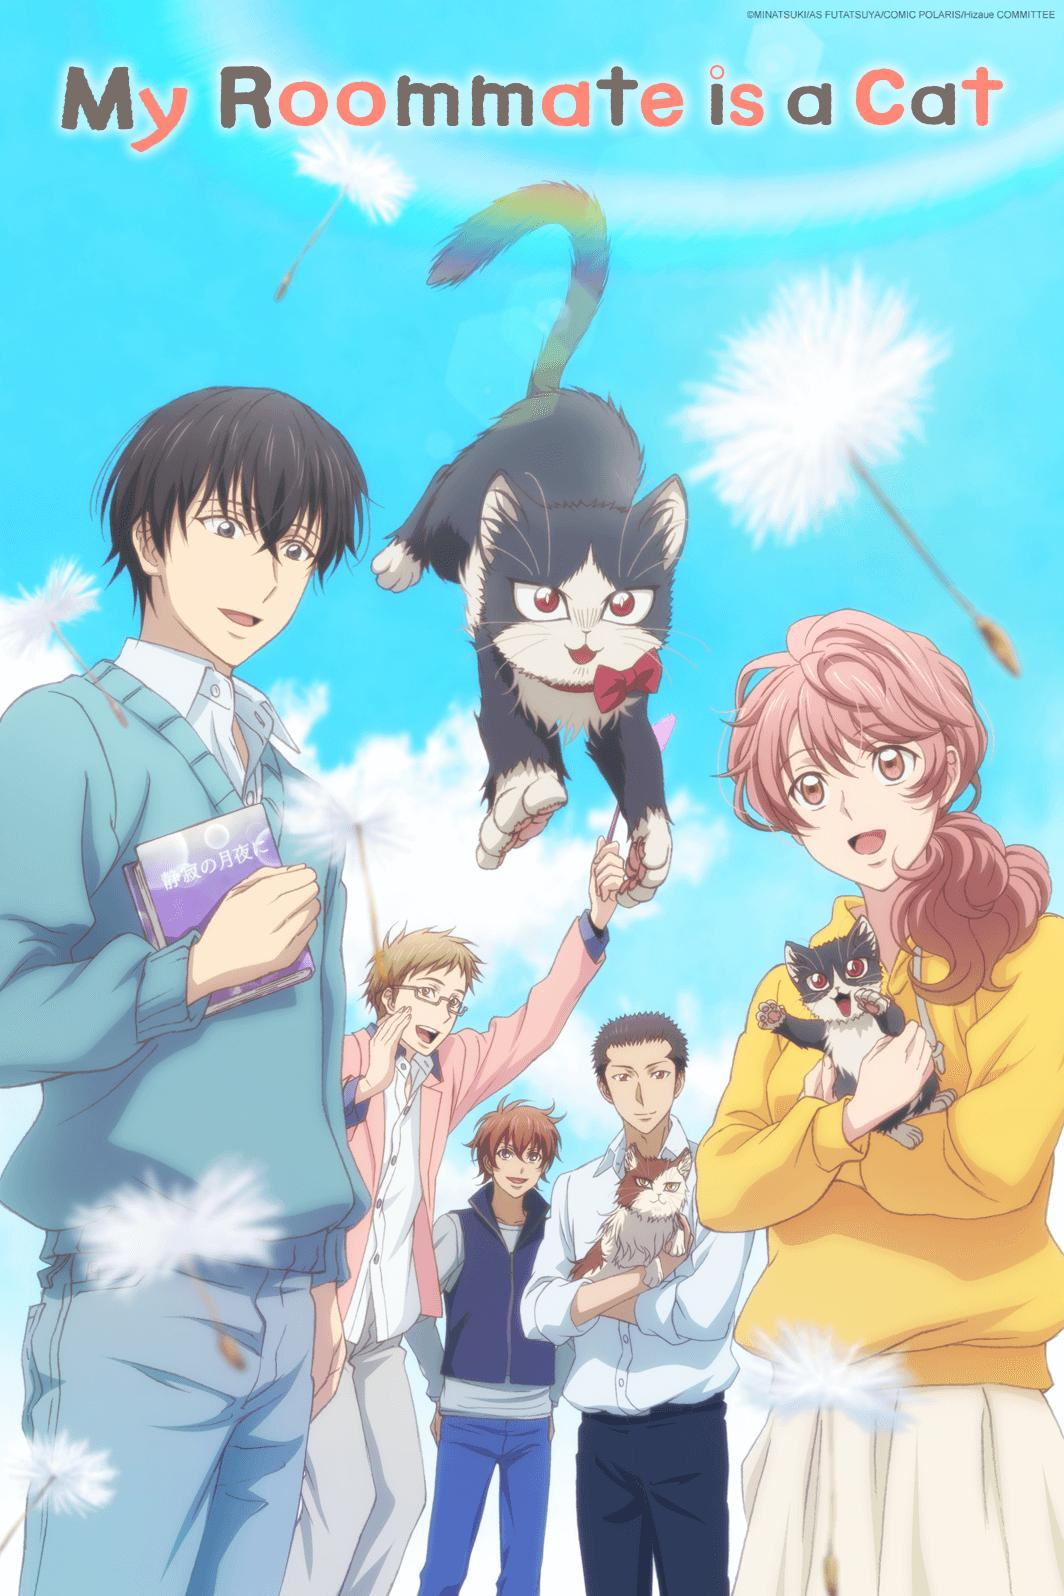 My Roommate is a Cat - Watch on Crunchyroll